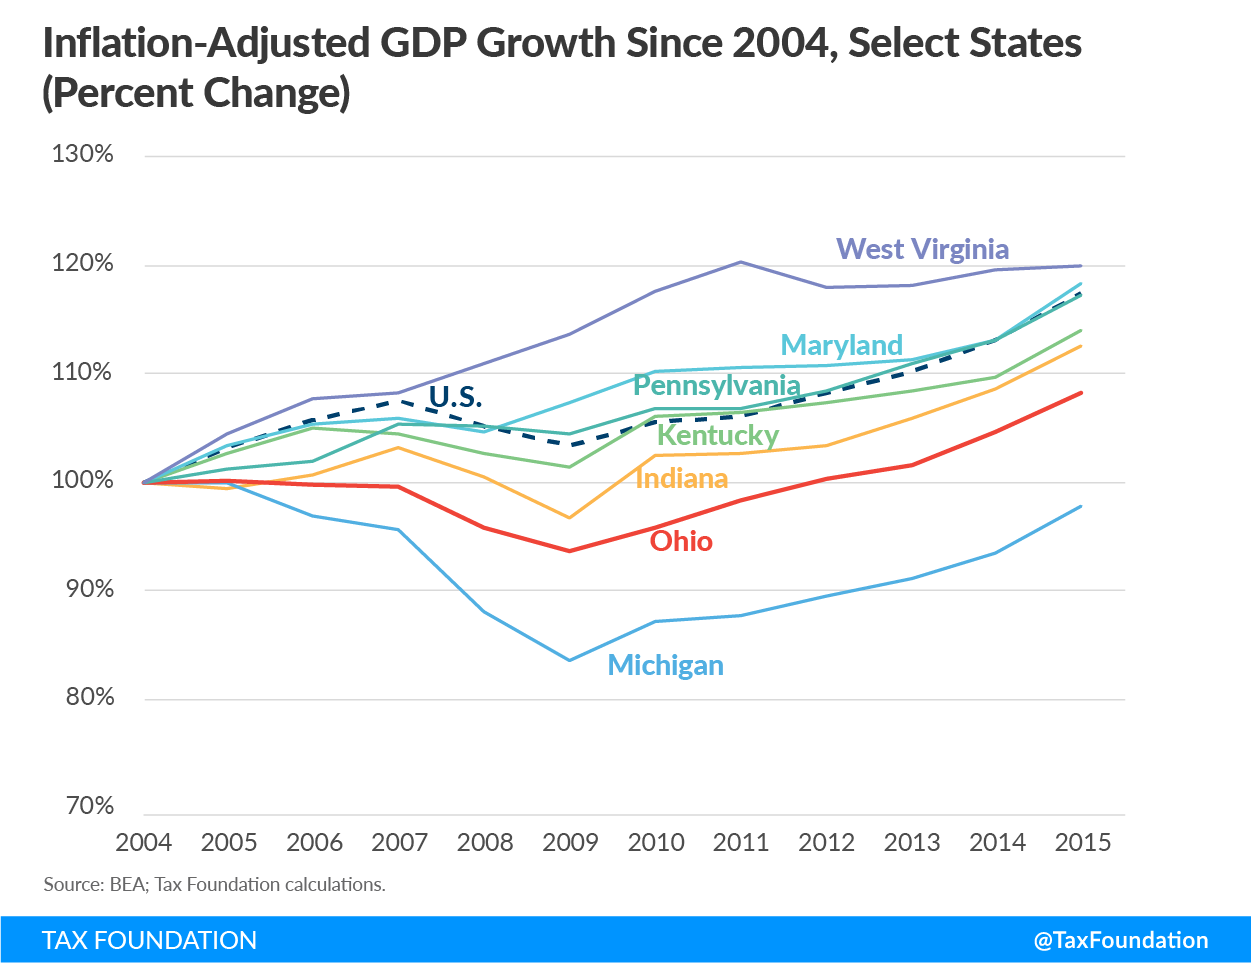 Ohio CAT Inflation-Adjusted GDP Growth Since 2004, Select States (Percent Change)